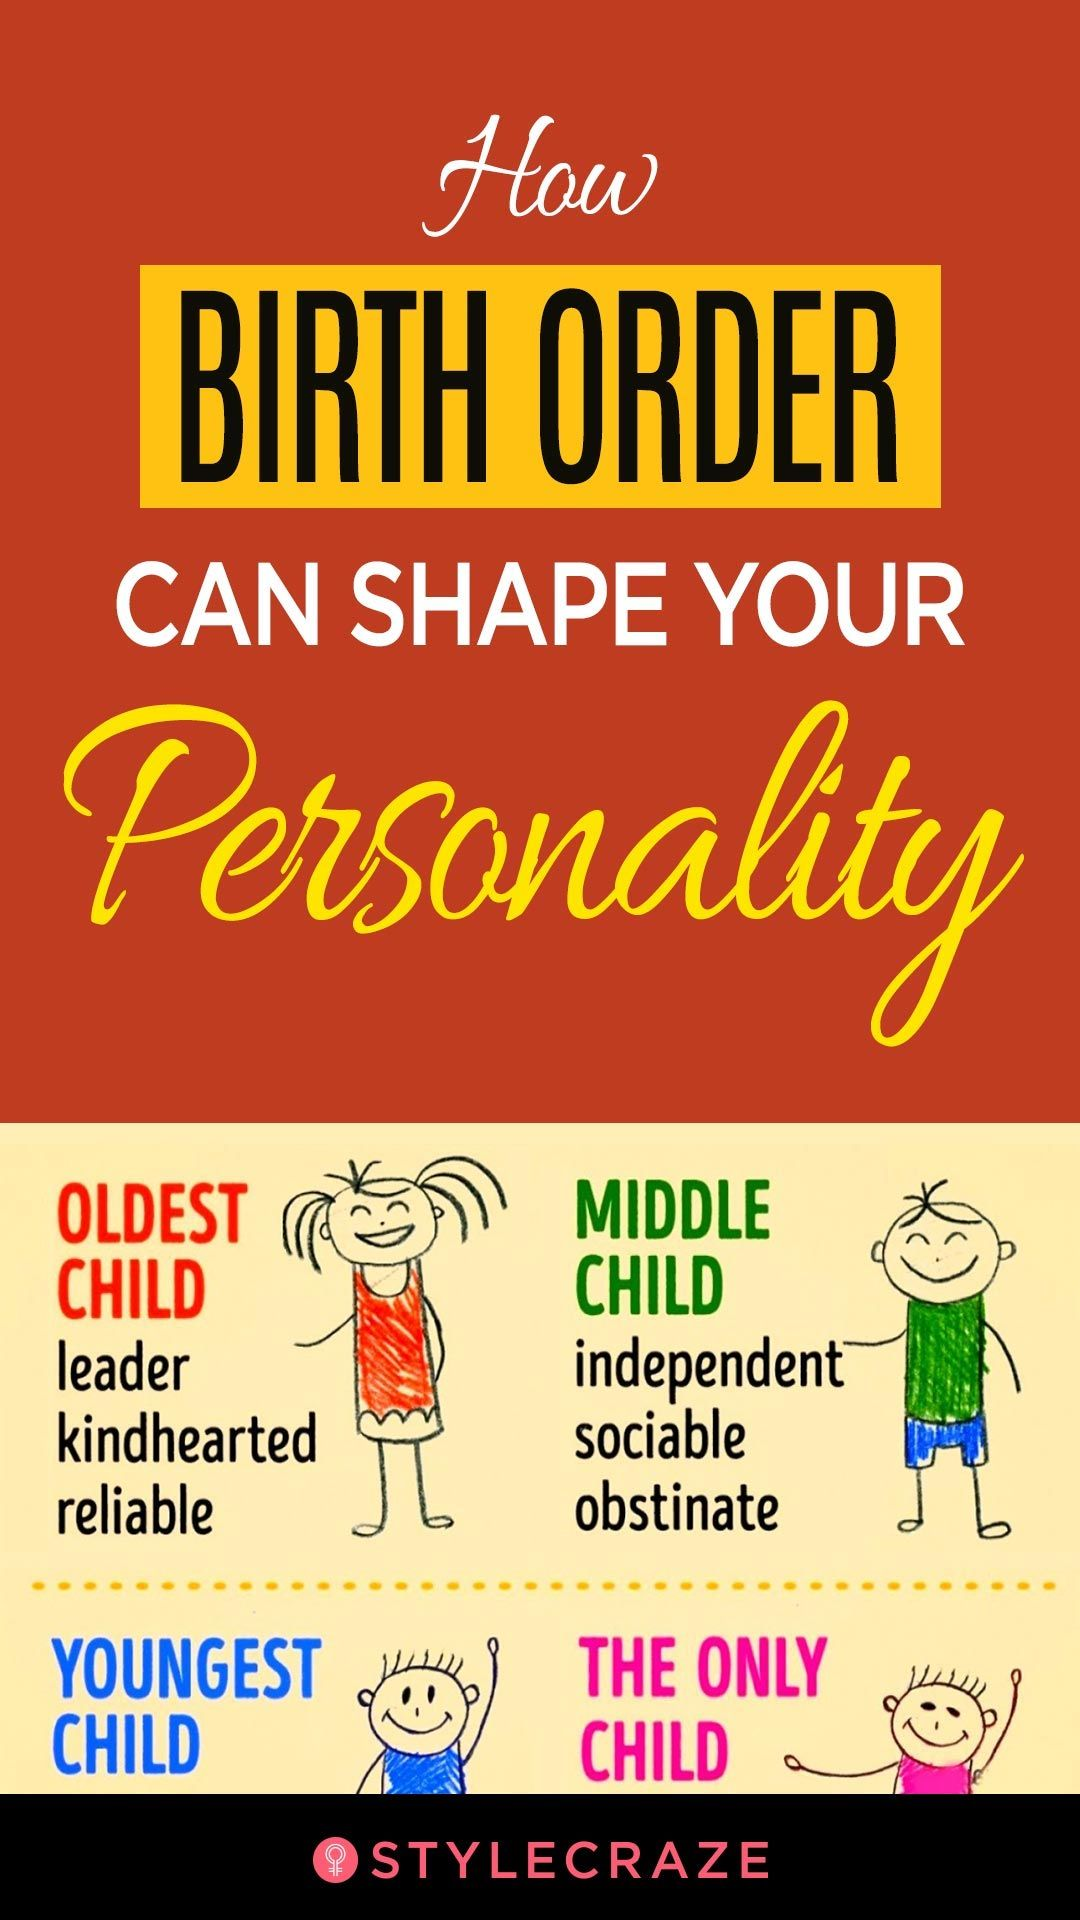 images How Birth Order Can Shape Your Personality